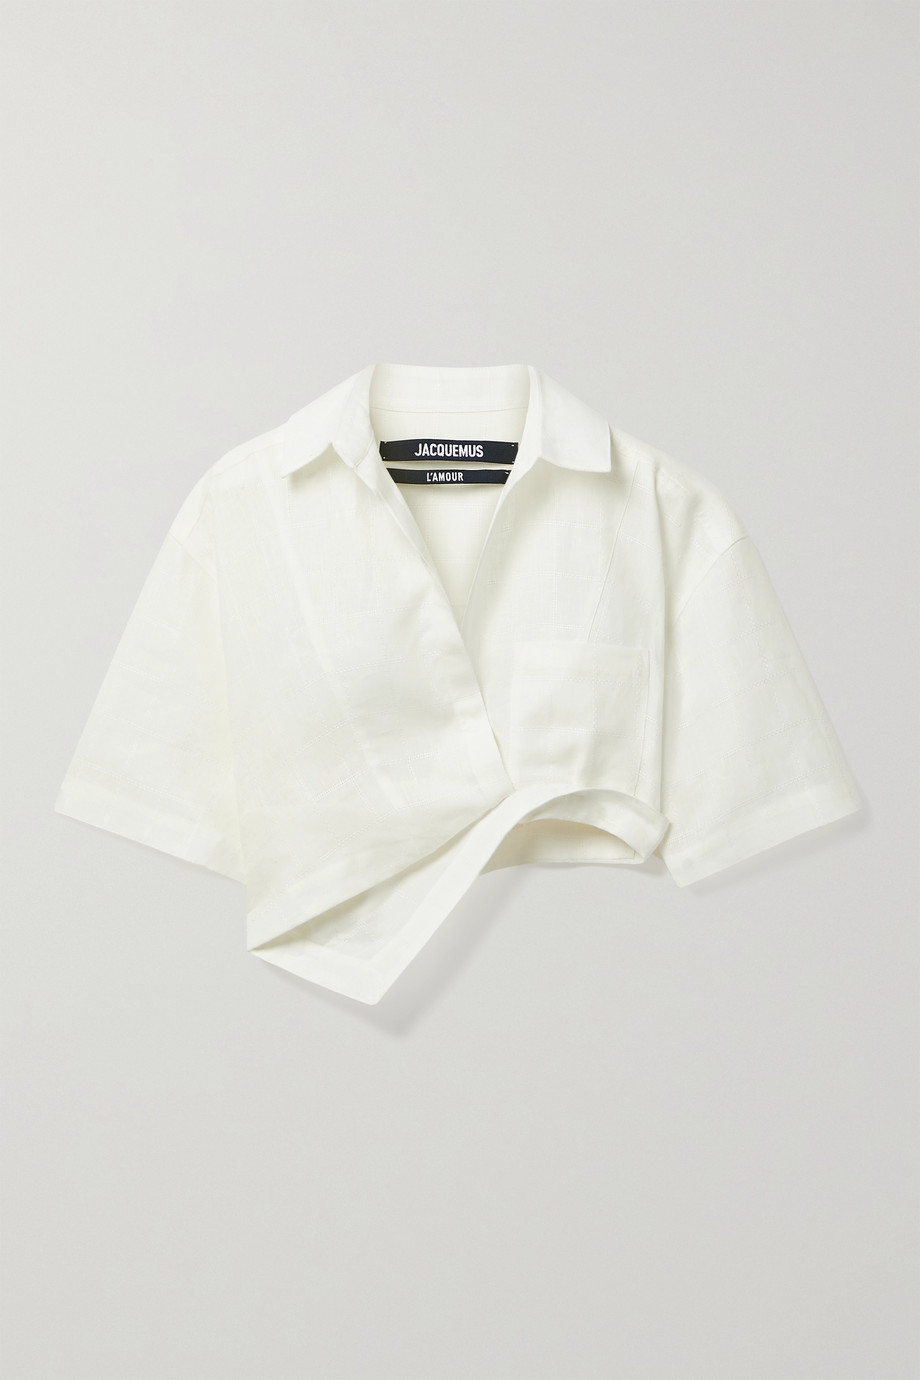 JACQUEMUS Capri asymmetric cropped cotton-blend jacquard shirt